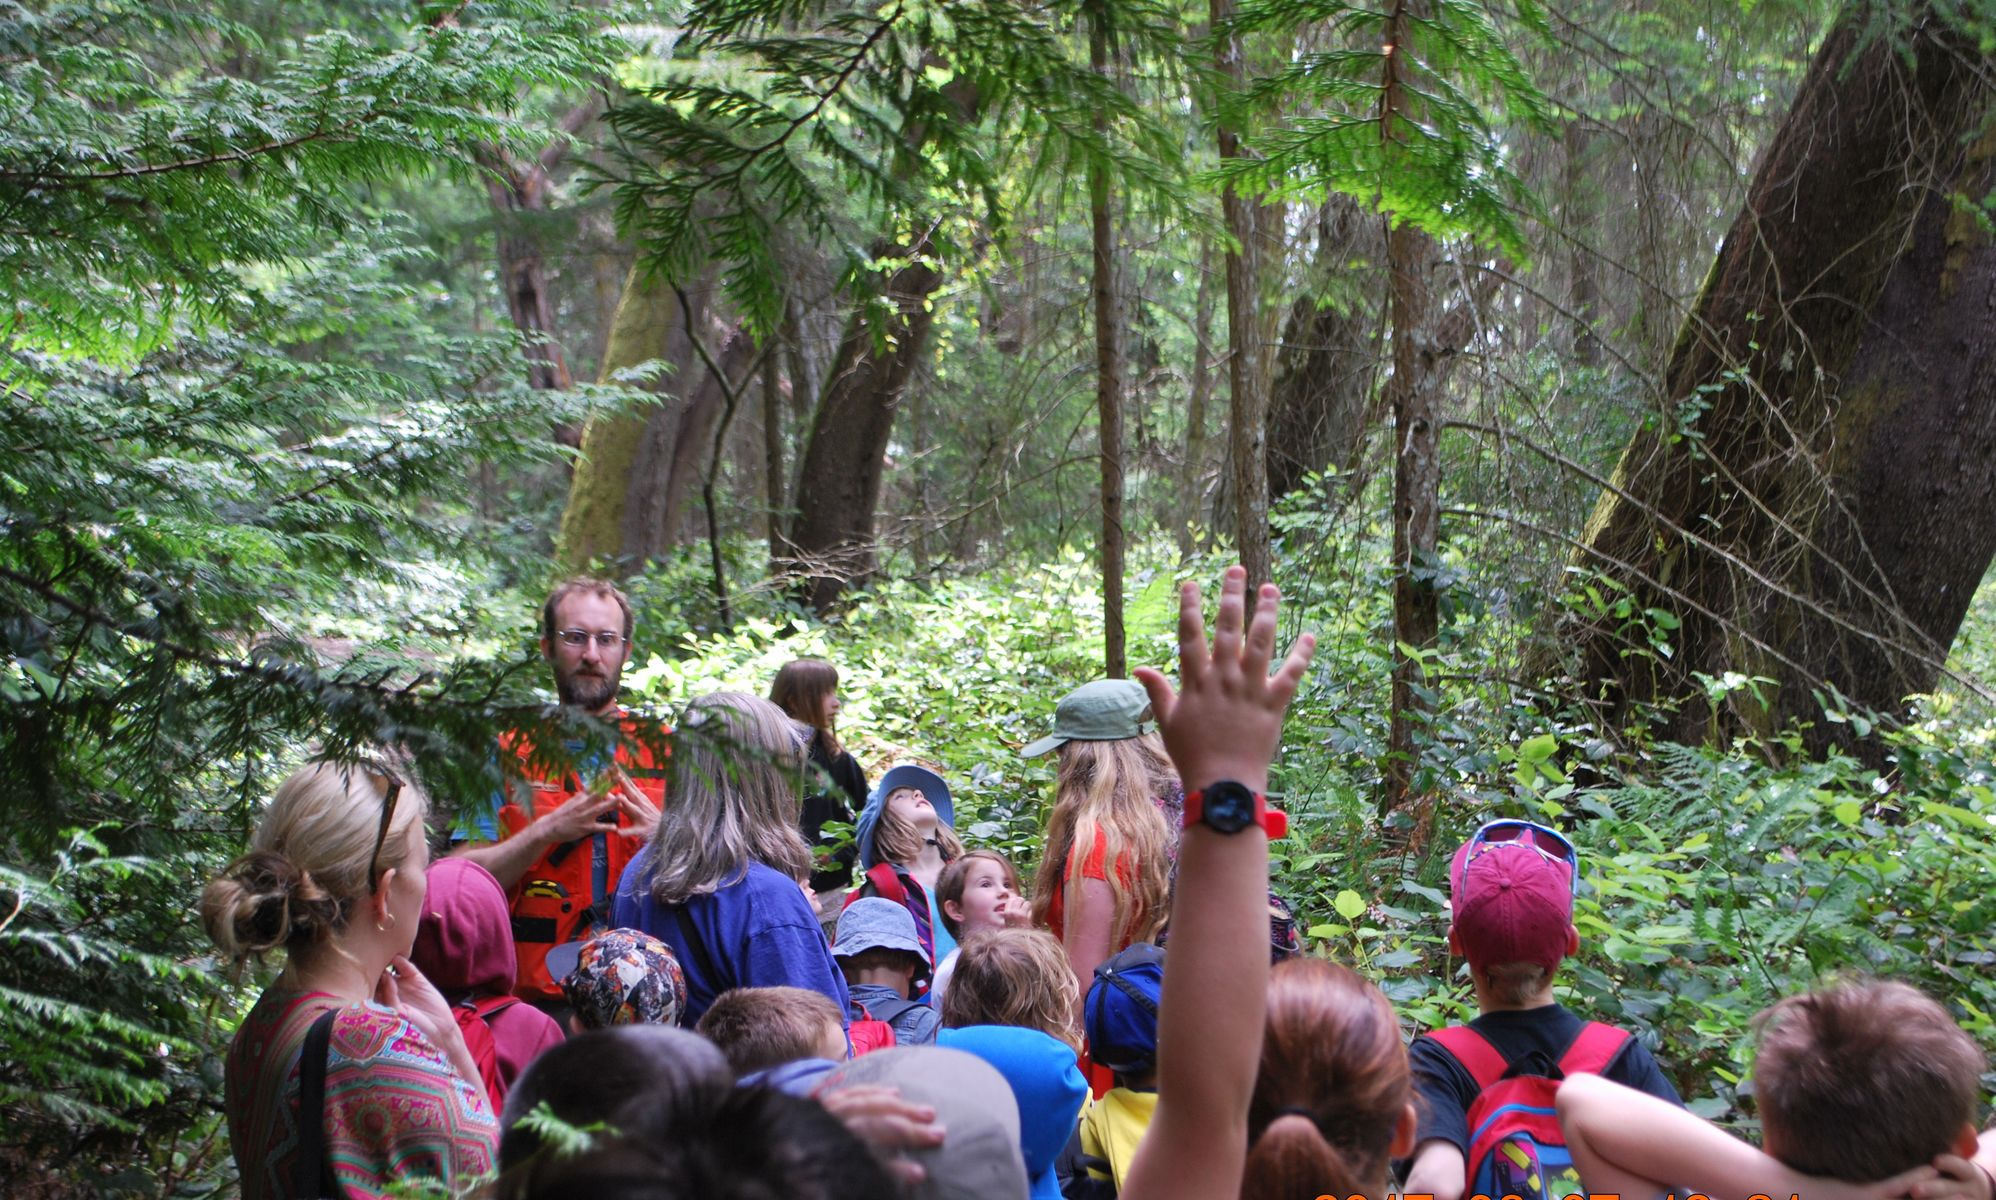 Students ask questions during an outdoor lesson about forests.